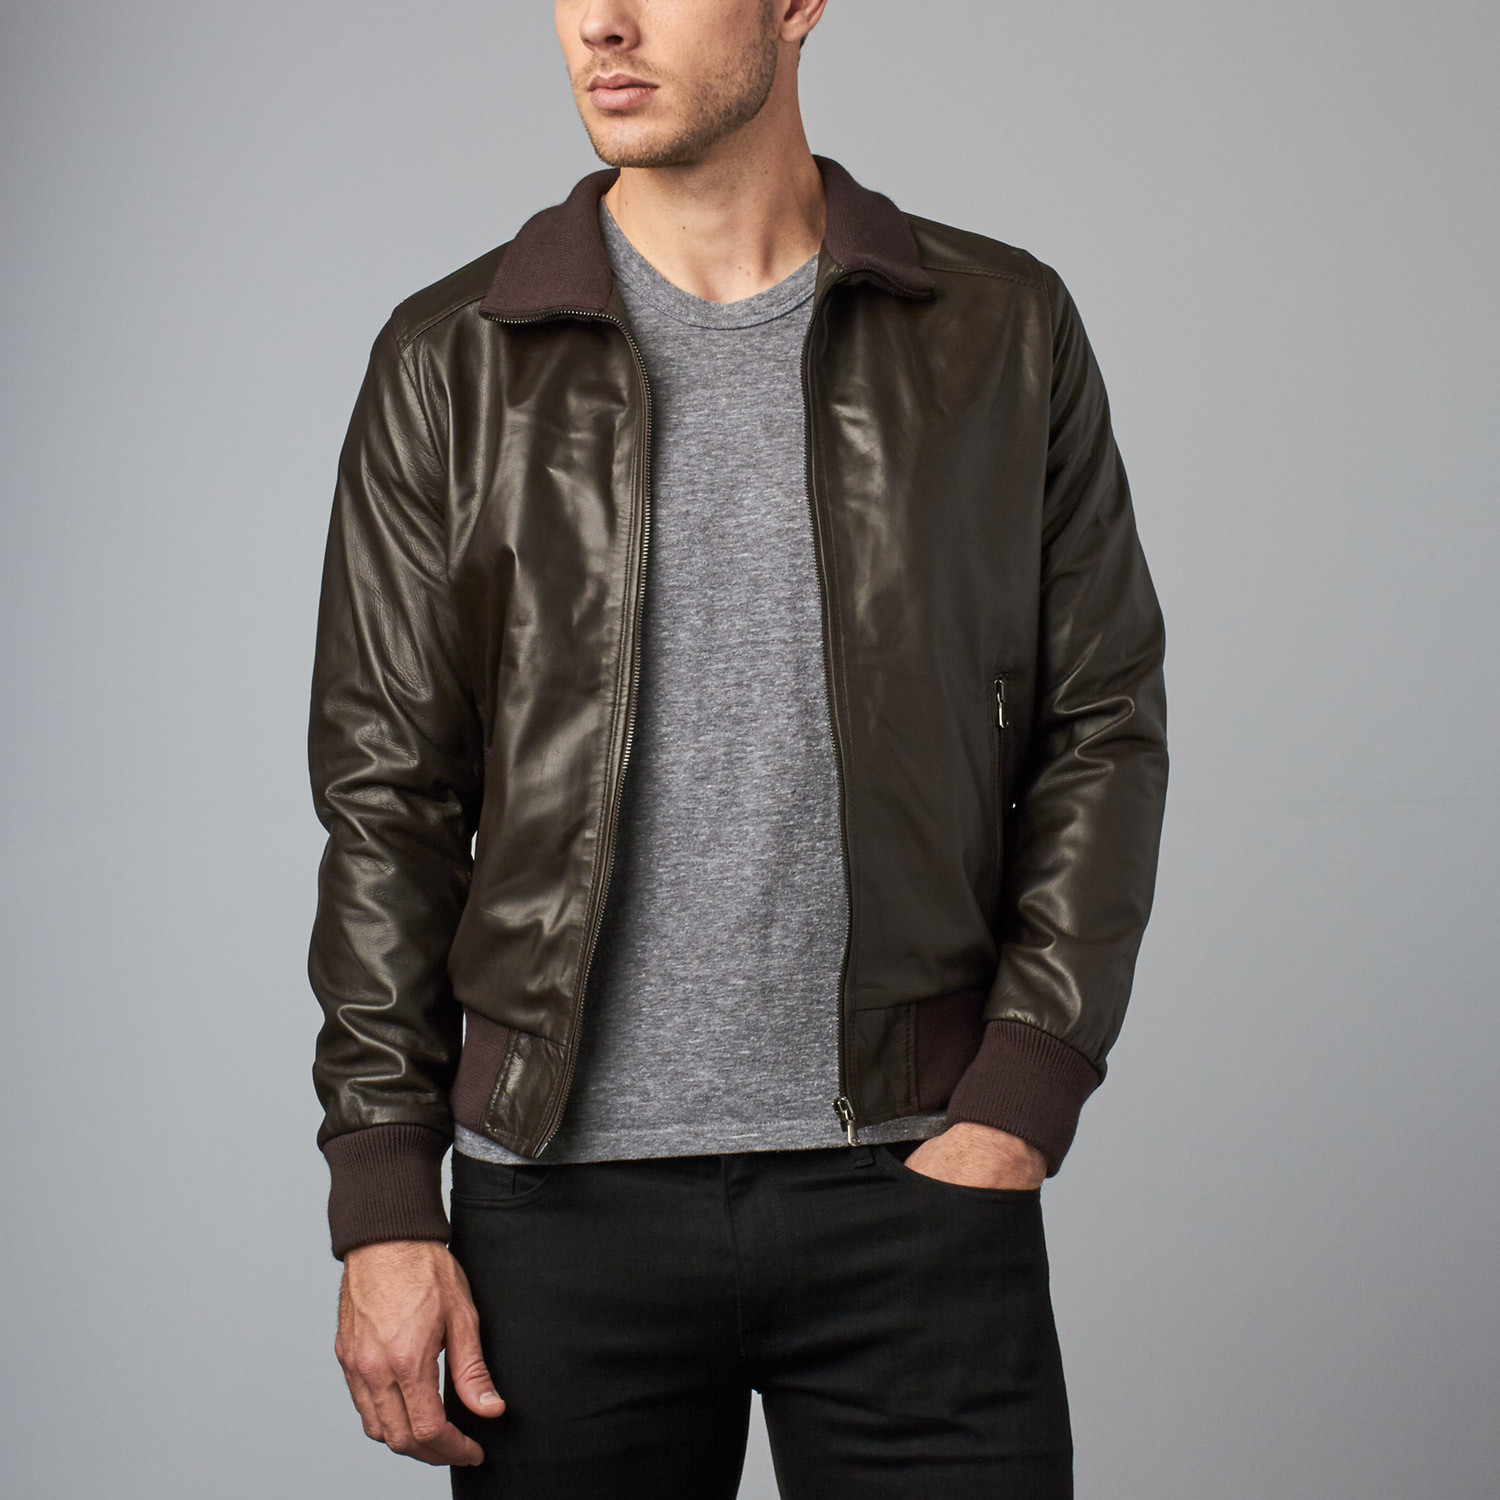 b1e33ad0b95 107 Leather Bomber Jacket    Dark Brown (Euro  46) - D Arienzo ...